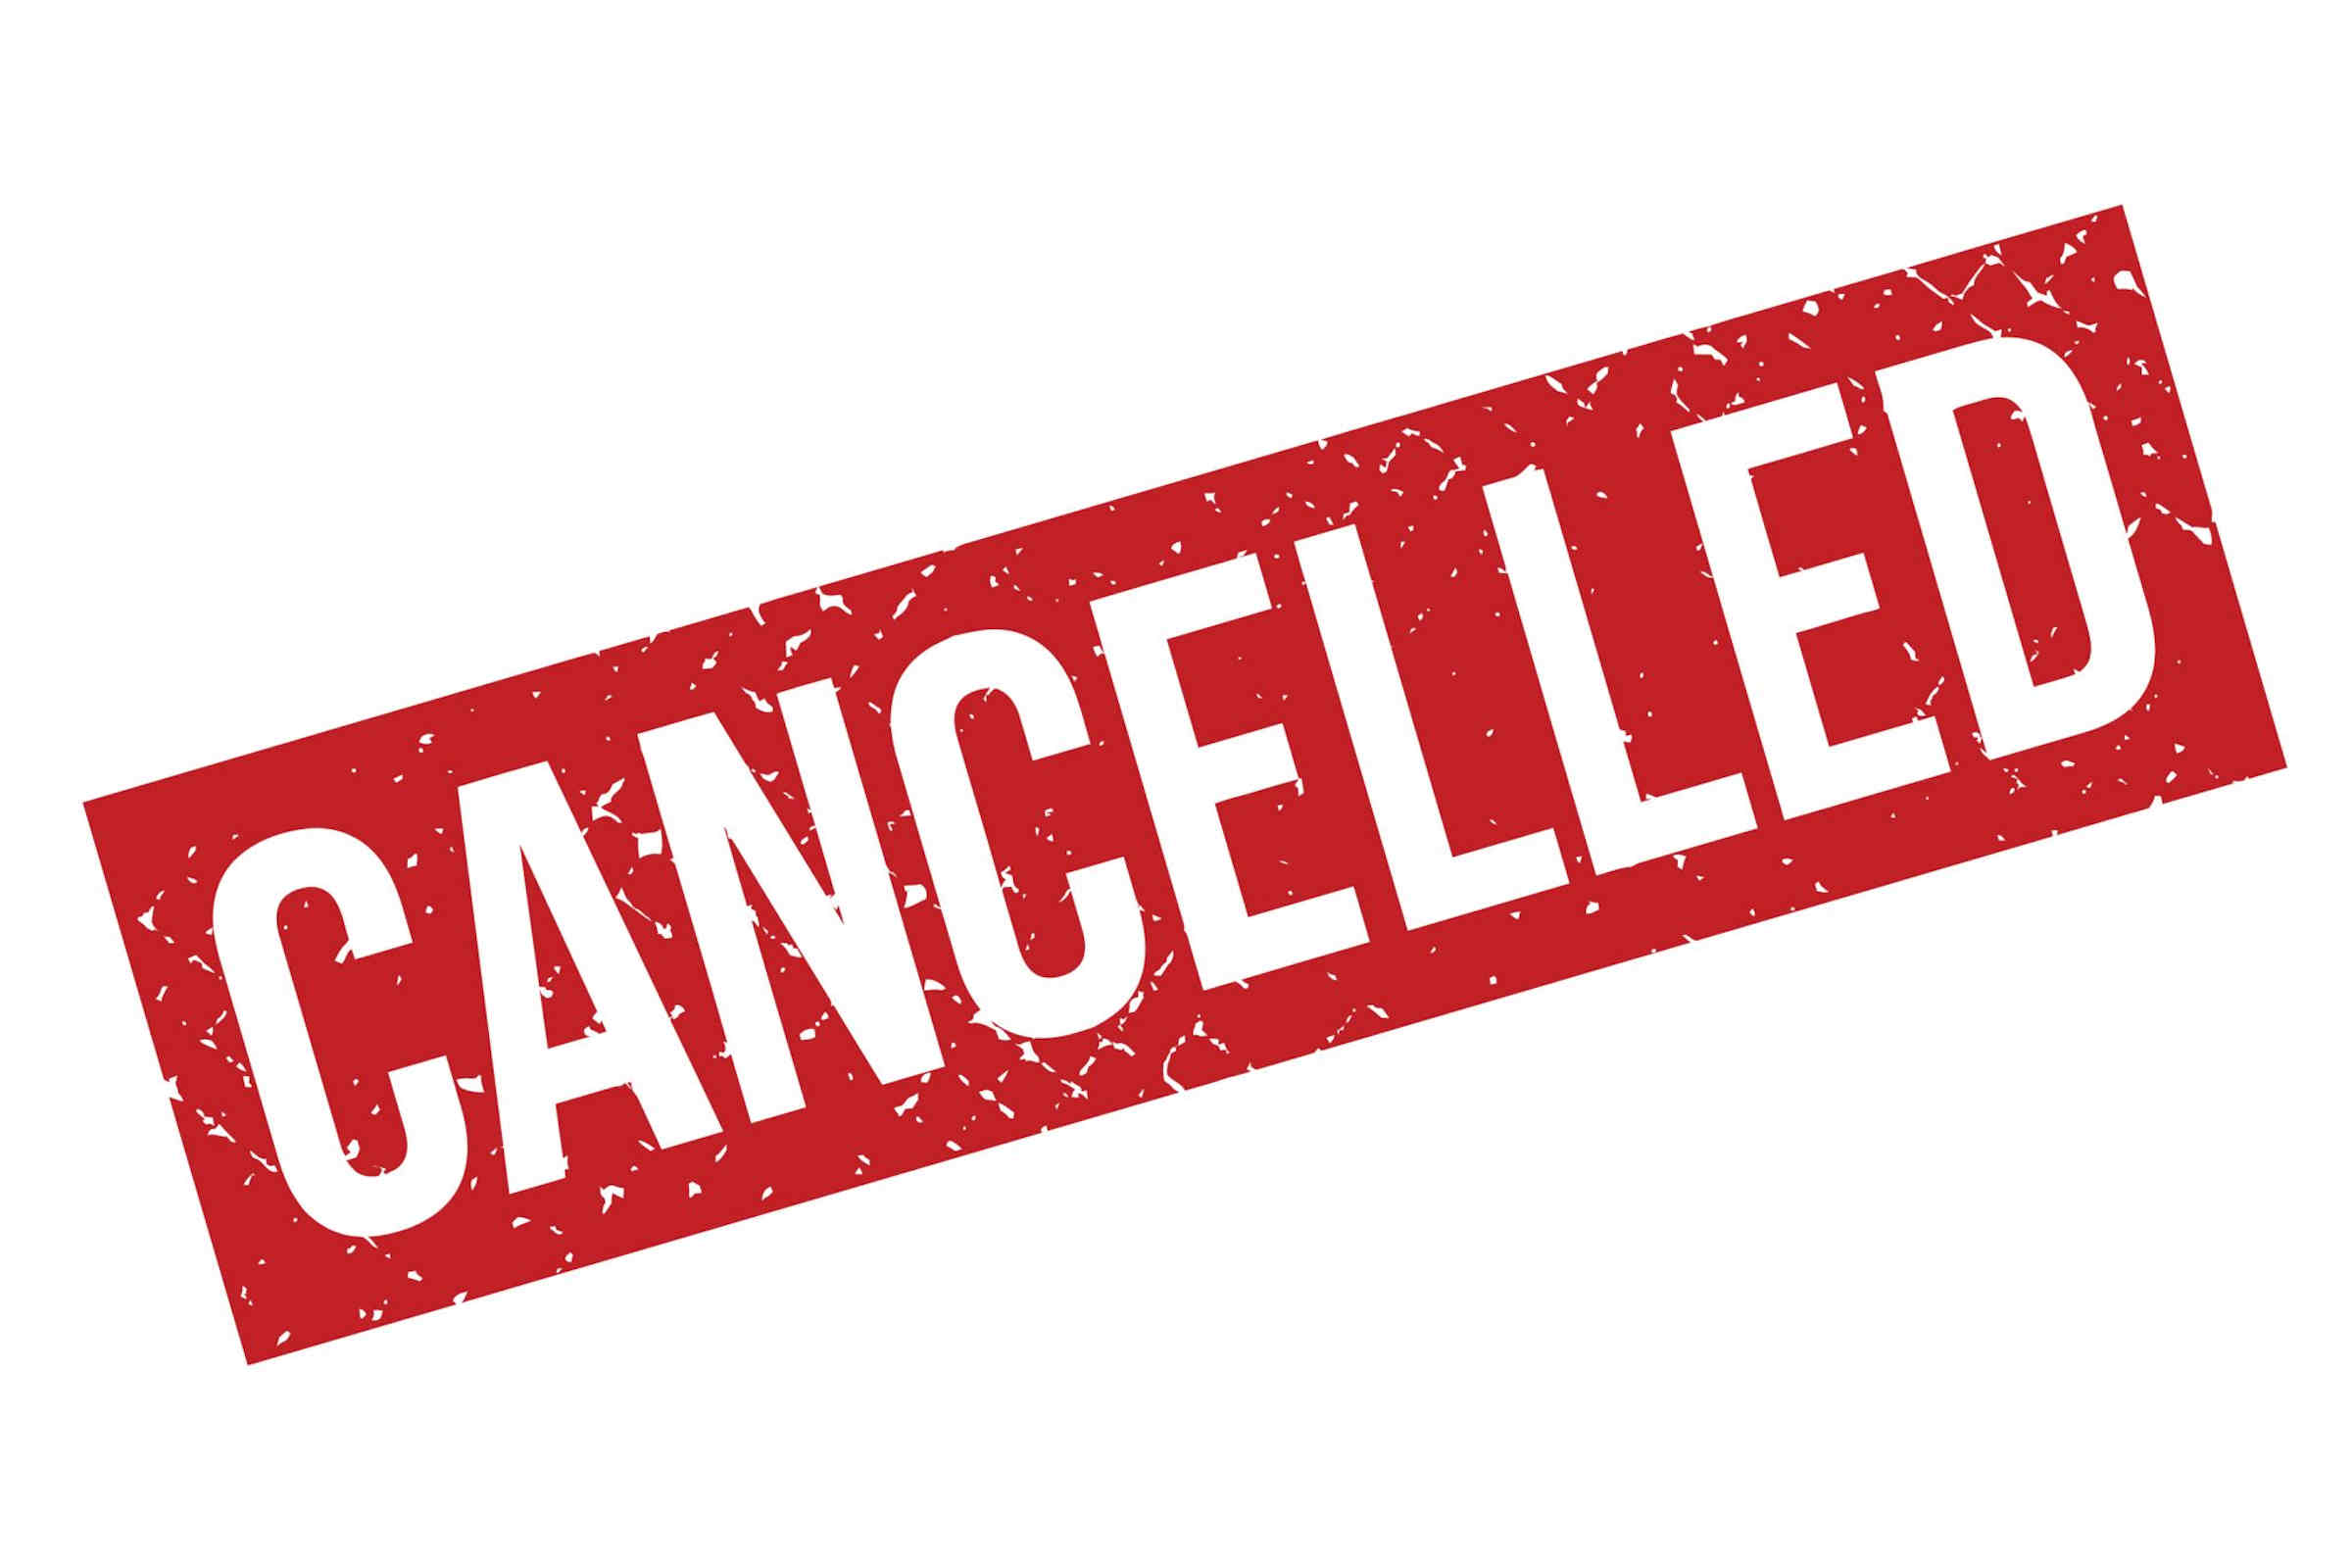 Causeacon 2021 Cancelled